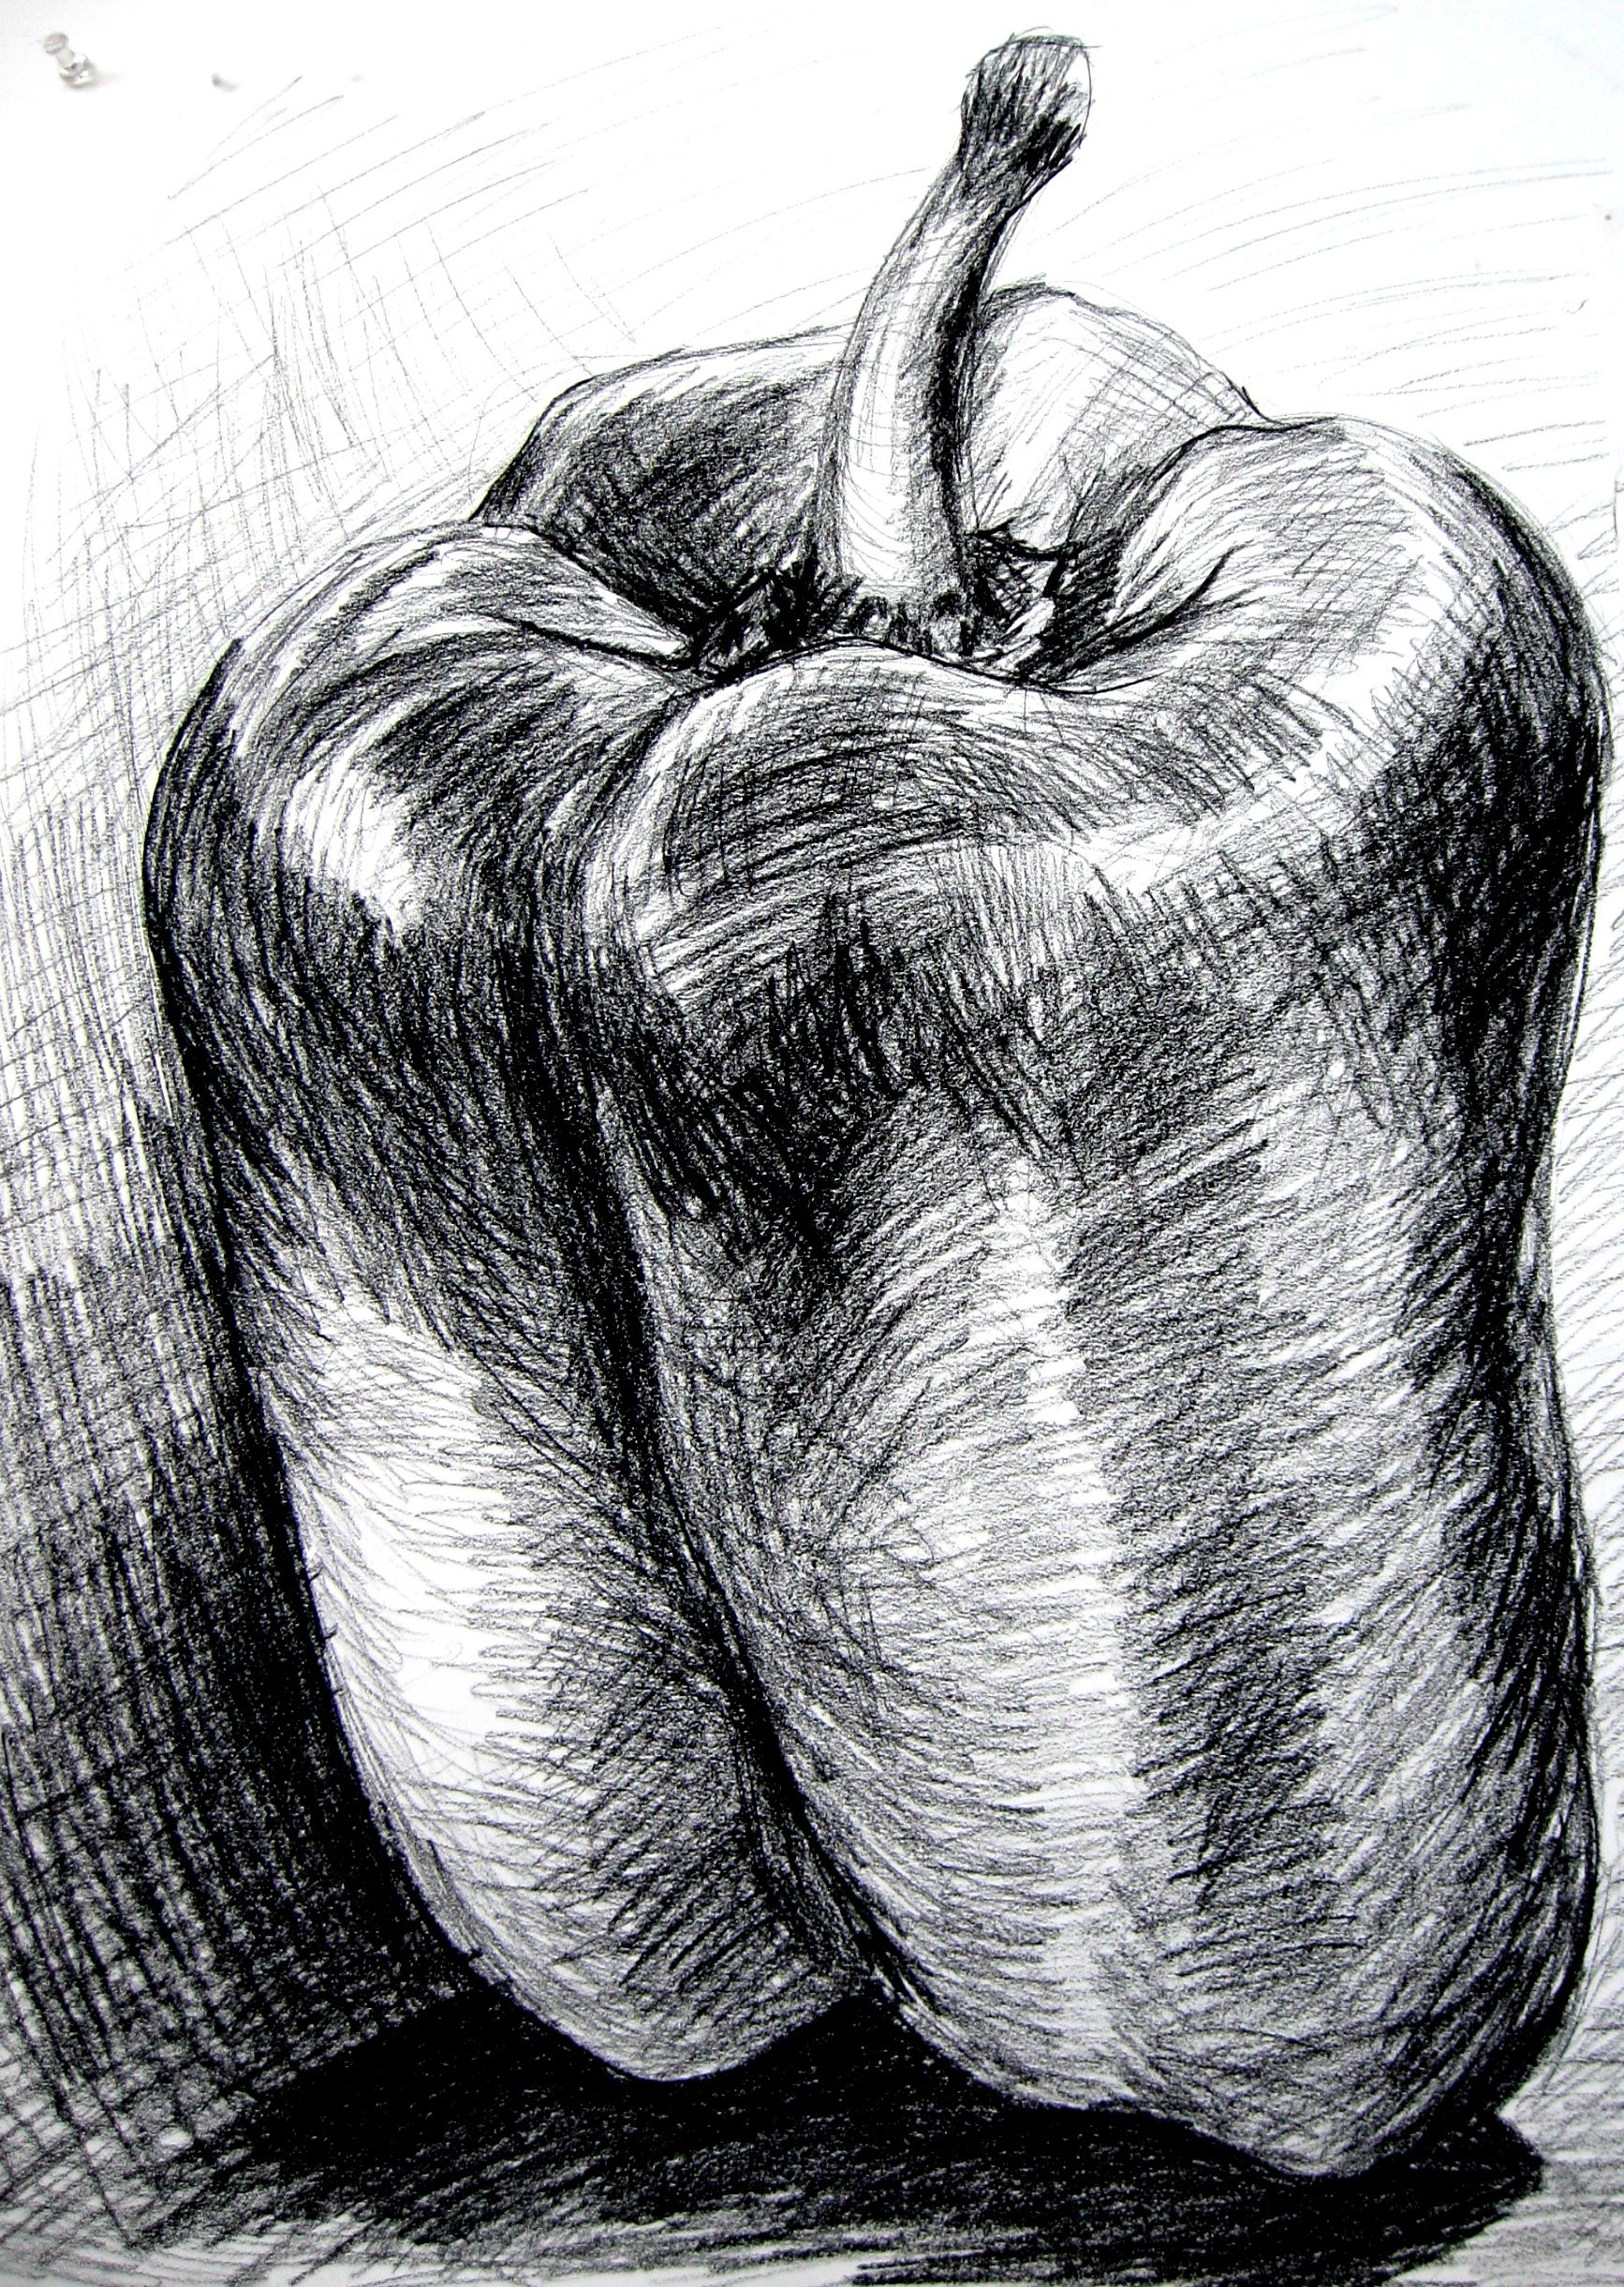 Bell pepper charcoal note the different directions of the marks and lines to suggest